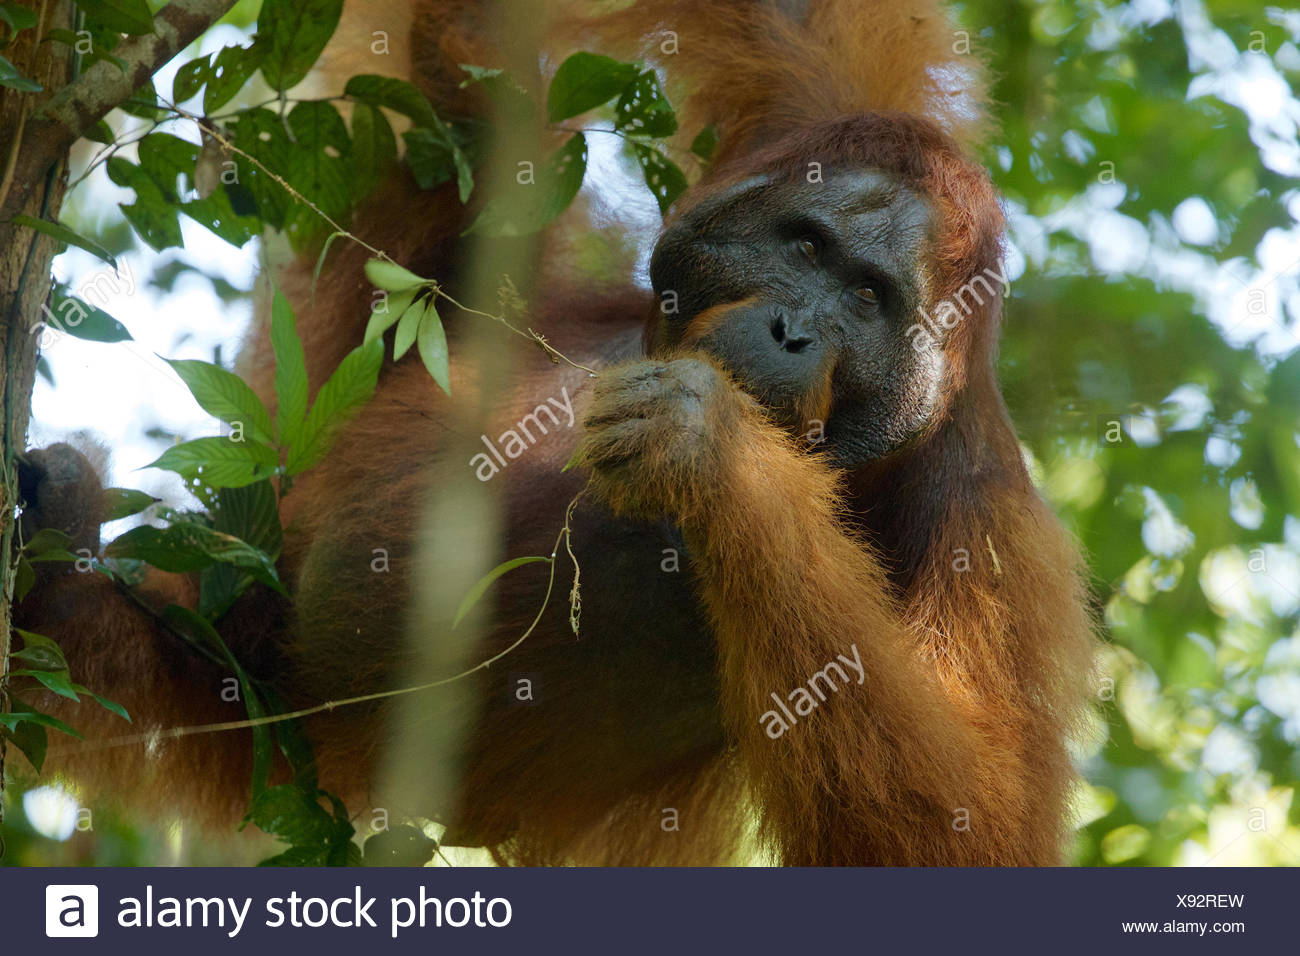 An adult male Bornean orangutan, Pongo pygmaeus wurmbii, rests on a tree branch in Gunung Palung National Park. - Stock Image